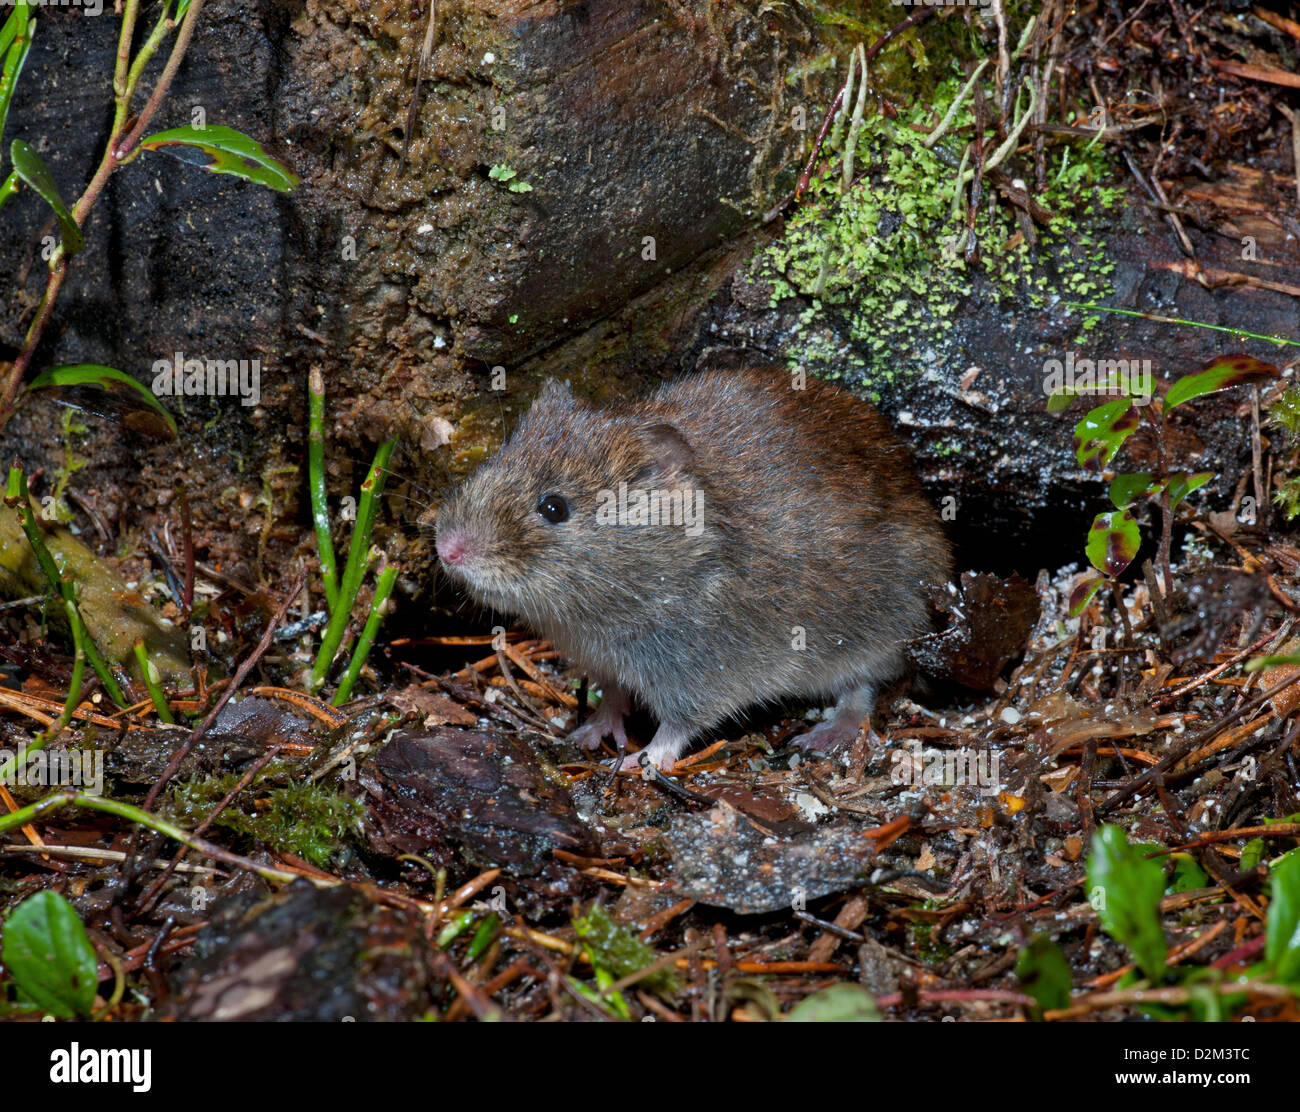 A Bank Vole at home in ancient Scottish pine woodland. SCO 8923 - Stock Image